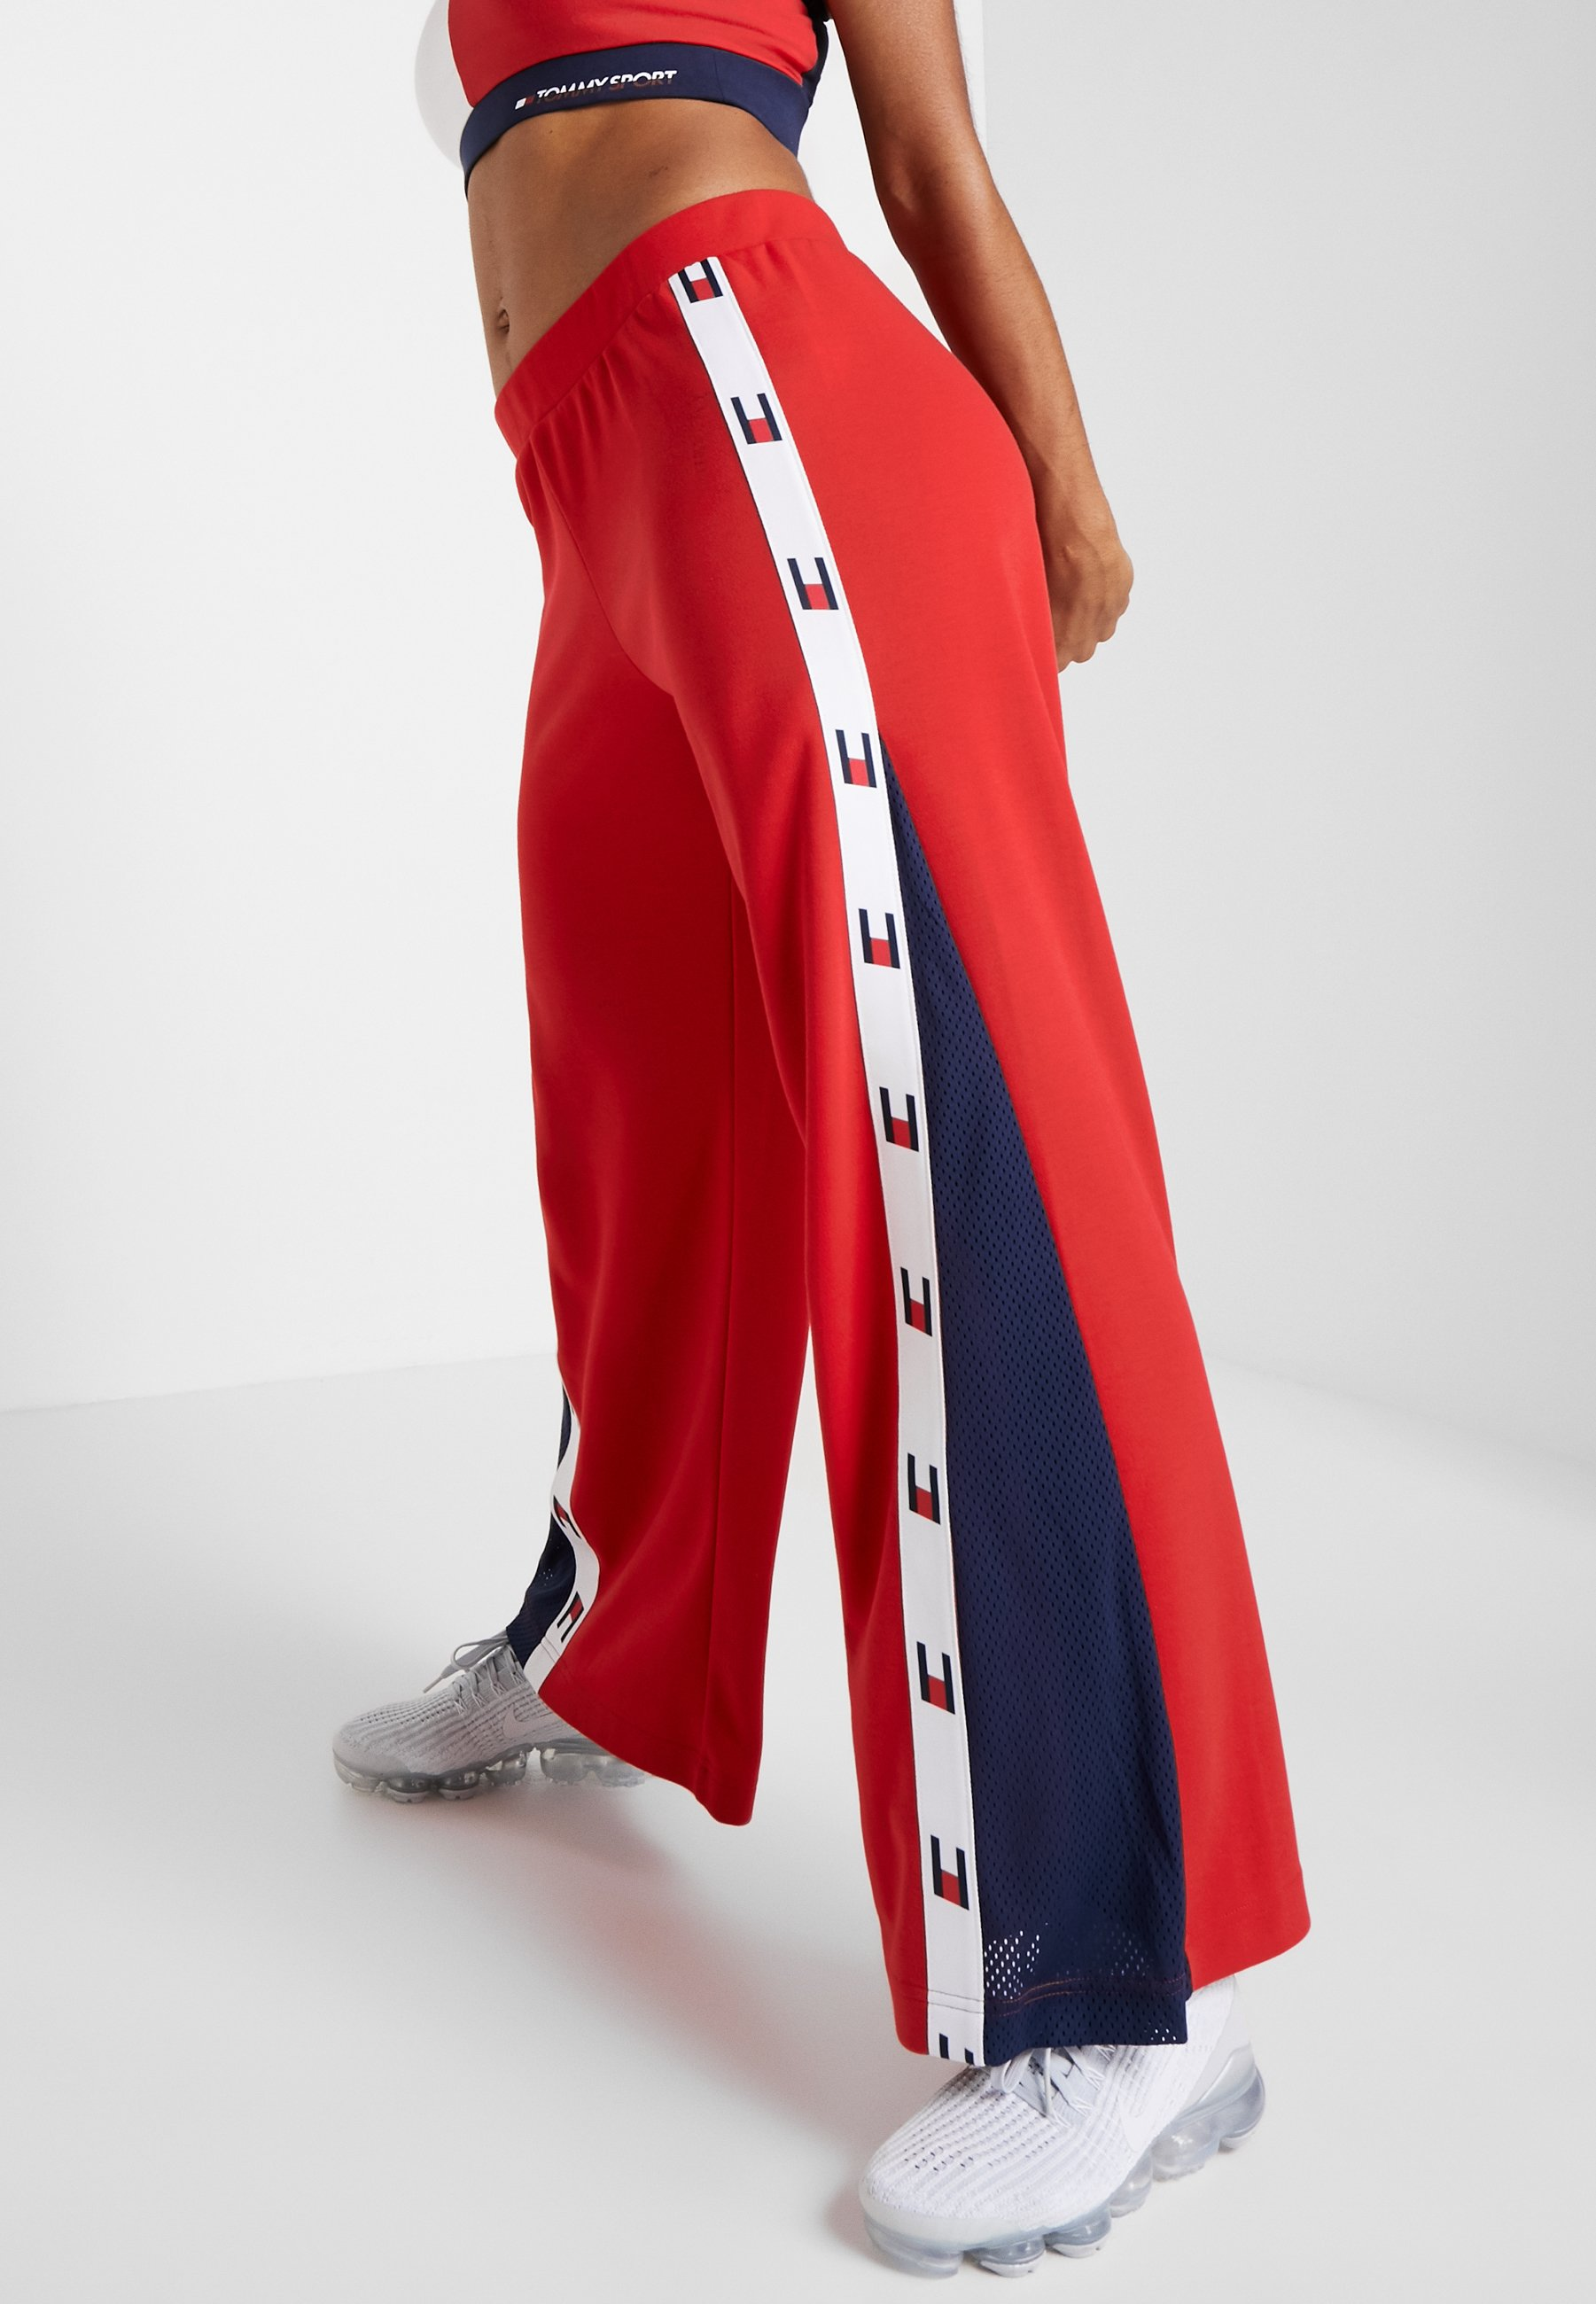 Flag De FlarePantalon Pant Survêtement Red Tommy Tape Sport zLGSUpqMV